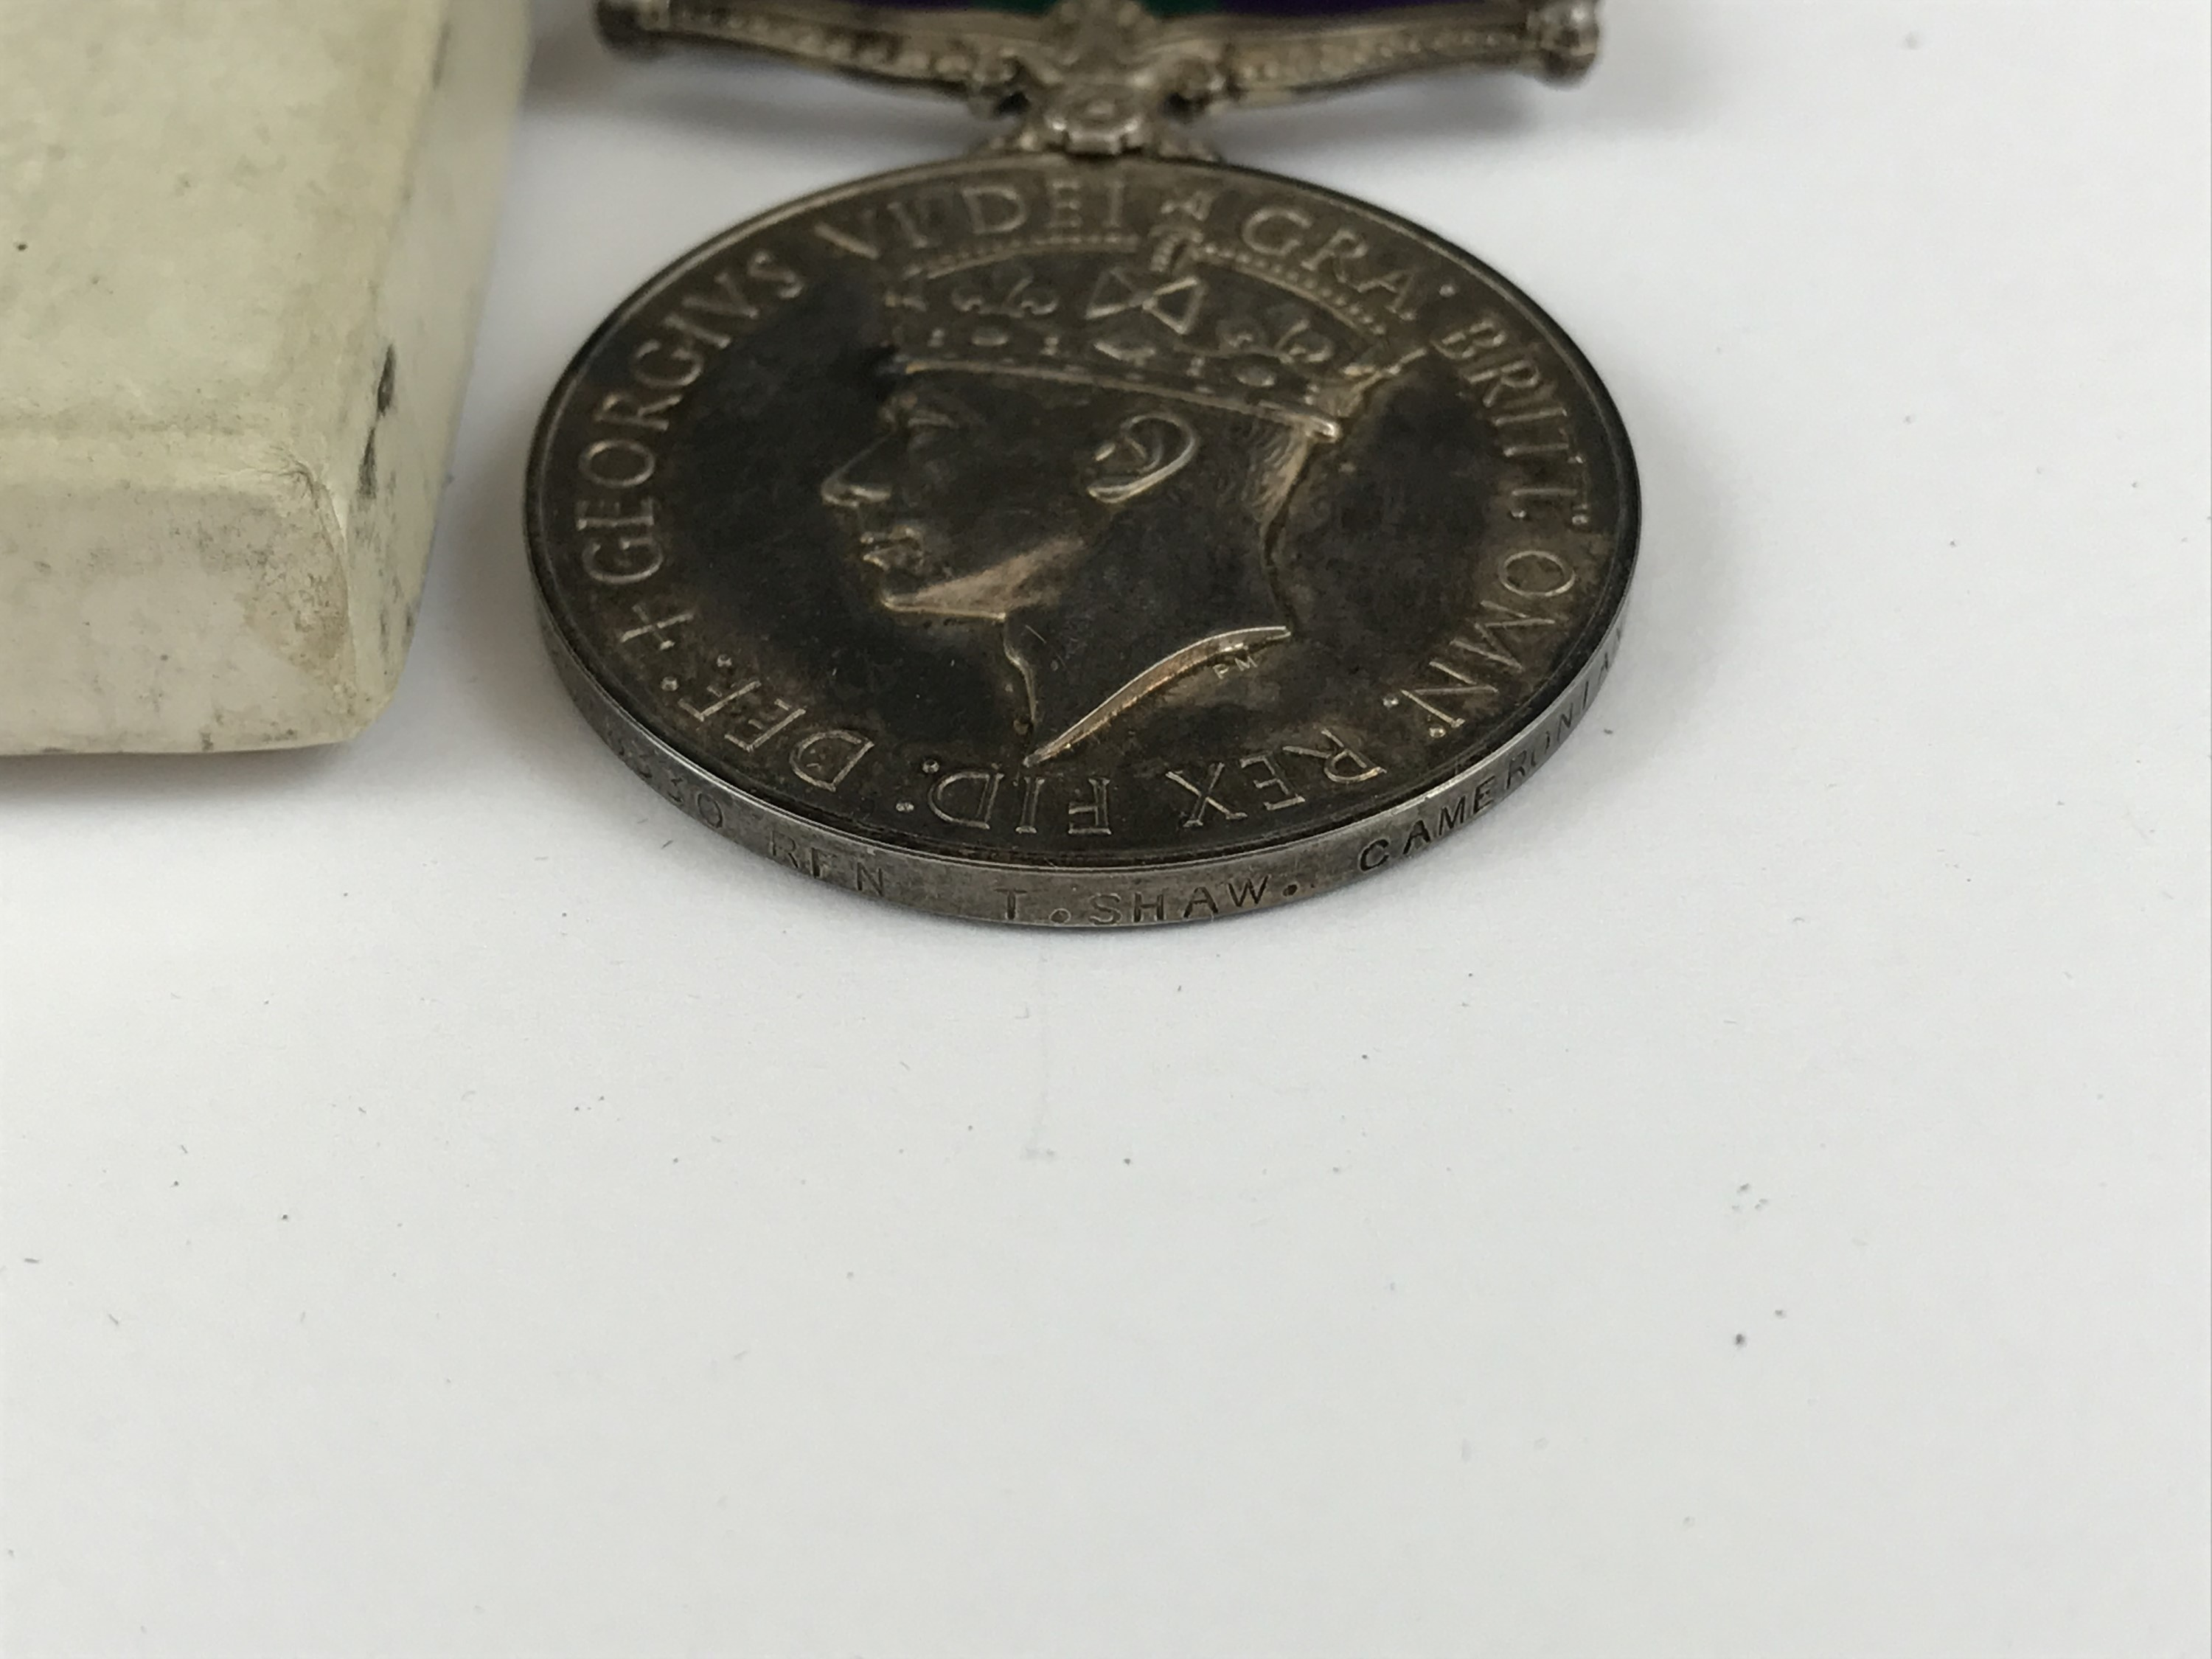 Lot 26 - A George V General Service Medal with Malaya clasp to 22648330 Rfn T Shaw, Cameronians, in carton